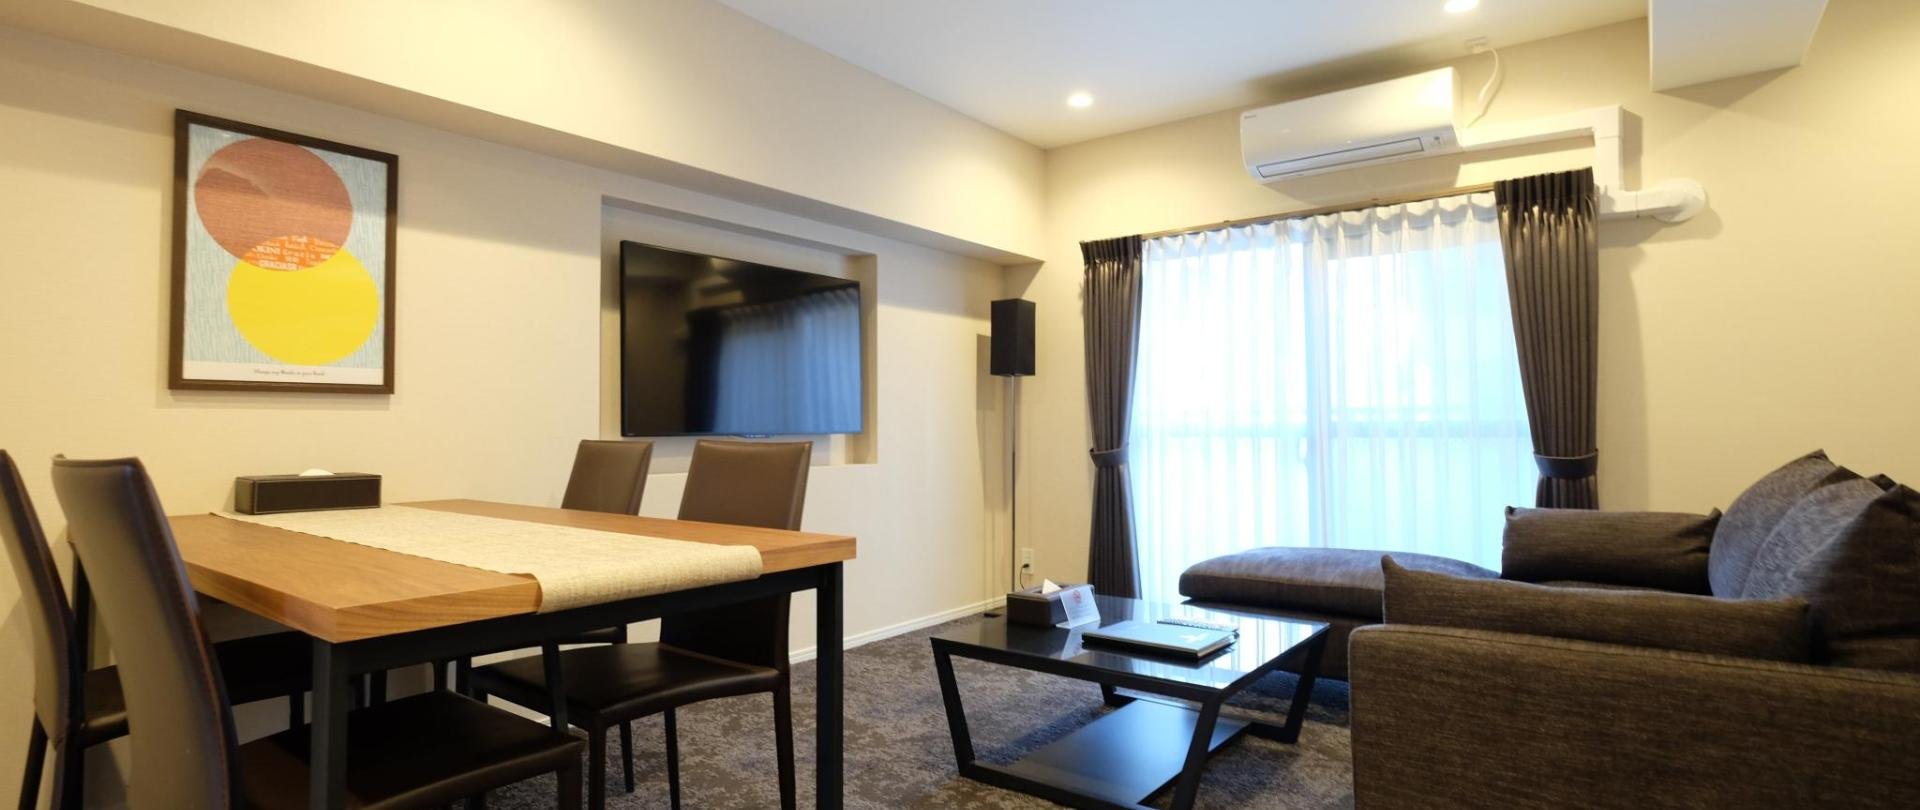 OOKINI HOTELS Shinsaibashi Nagahori Apartment